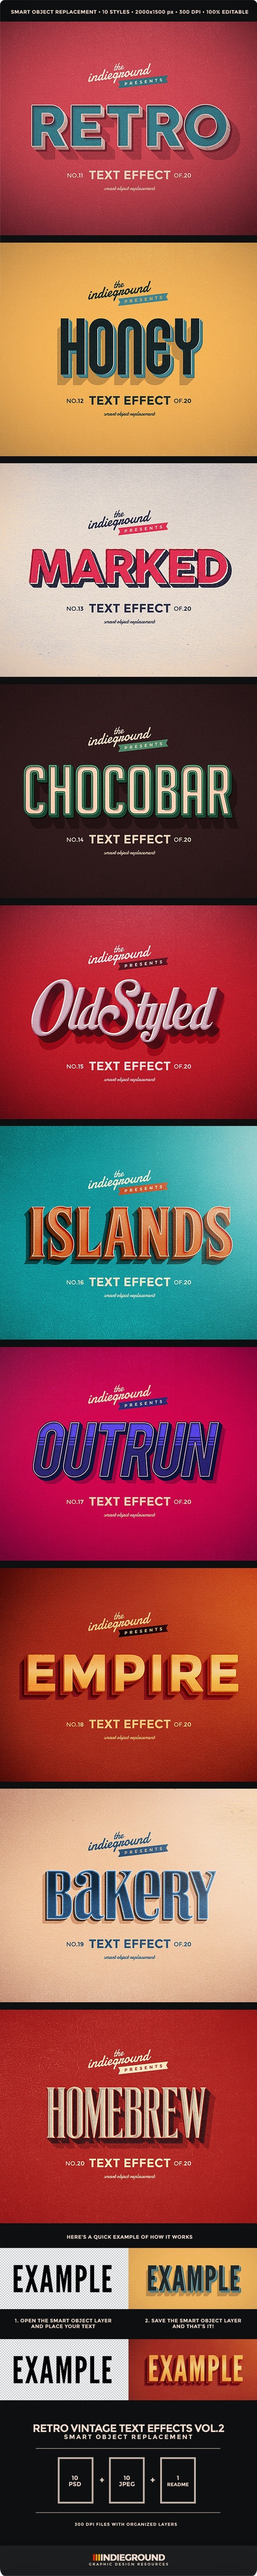 Retro Vintage Text Effects Vol. 2 - Text Effects Actions